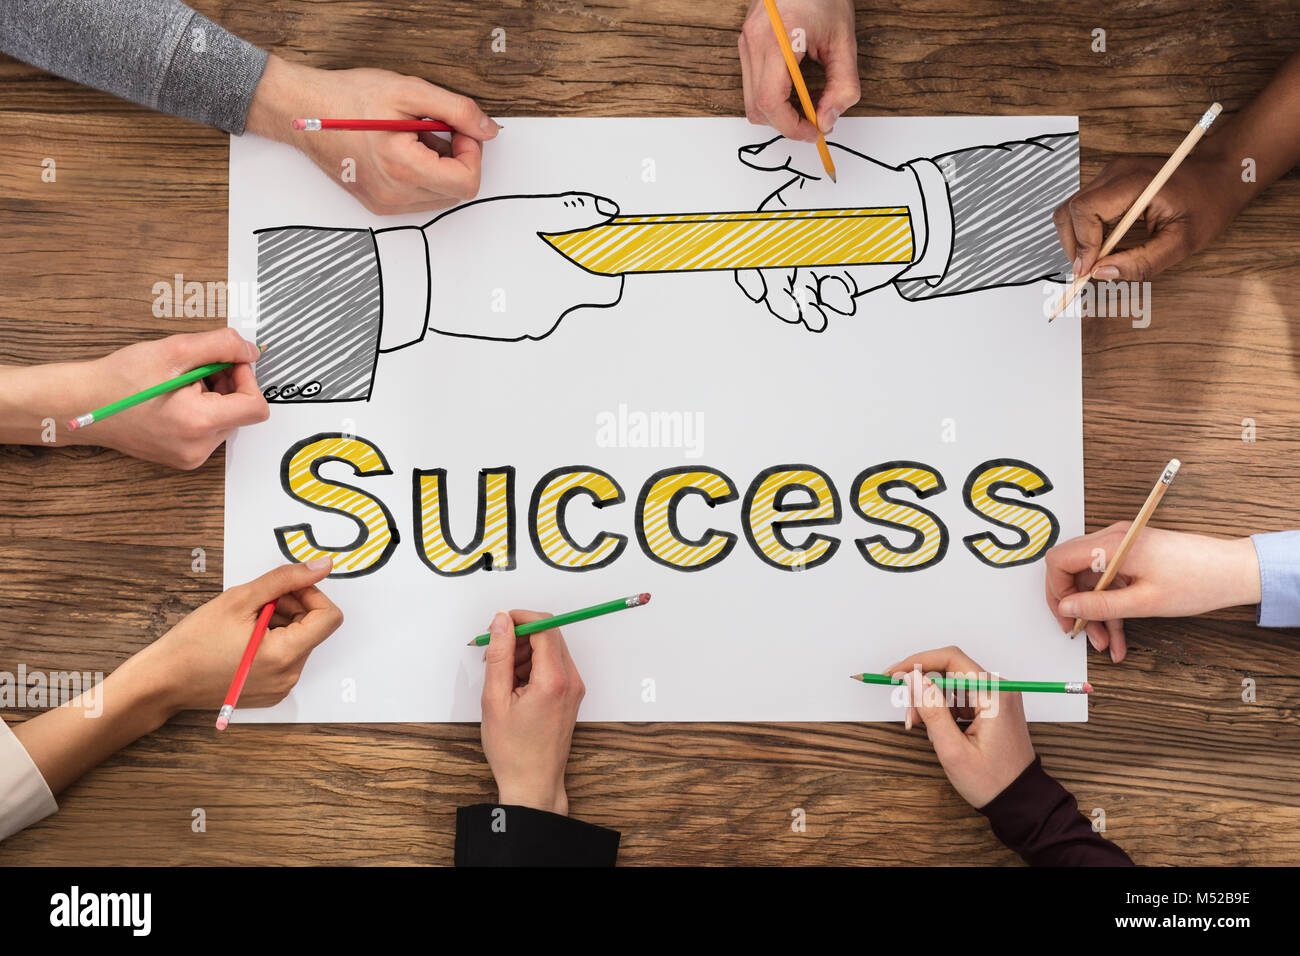 Hands Drawing Business Success Concept On Paper - Stock Image